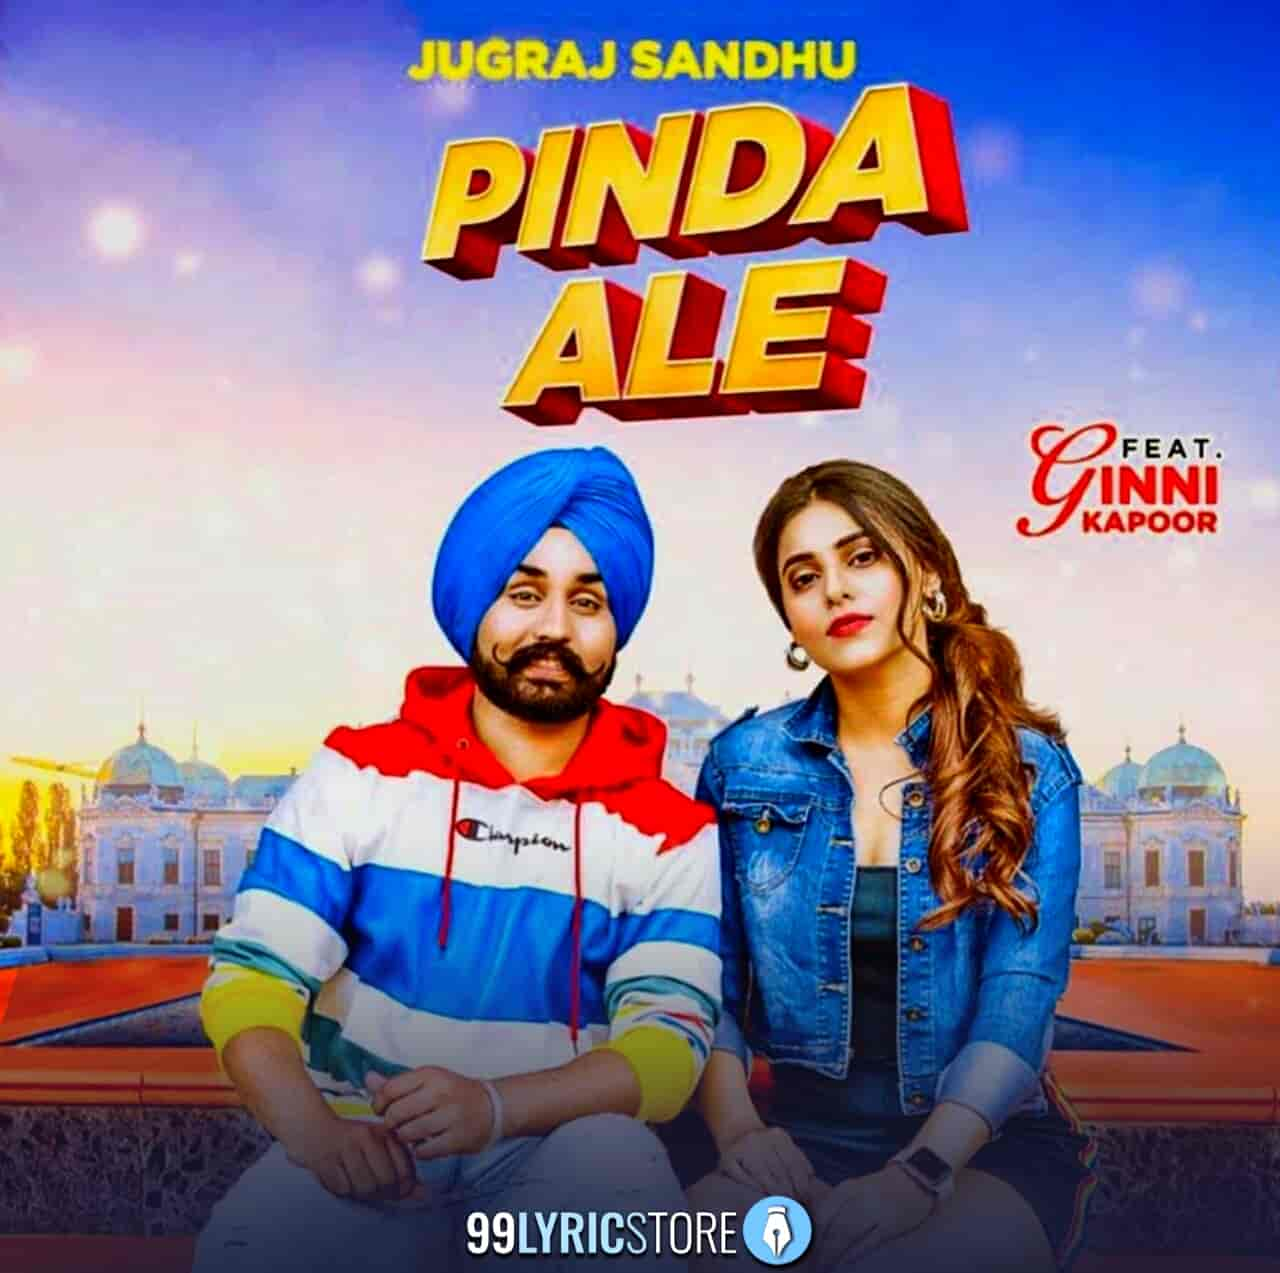 Pinda Ale Punjabi Song Images By Jugraj Sandhu